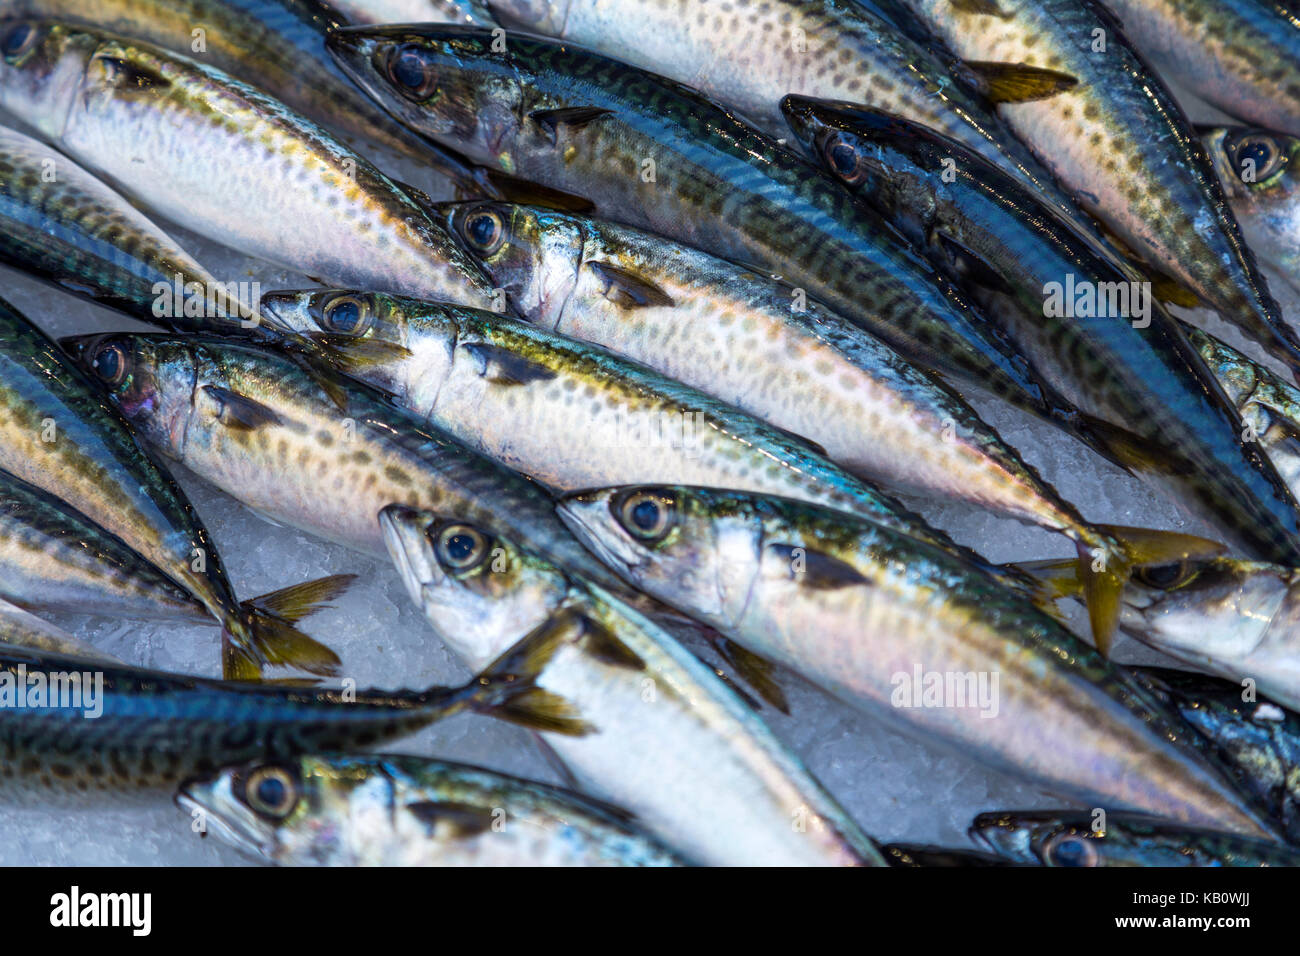 Fresh sardines on ice for sale at a fish market stall, Marseille, France - Stock Image